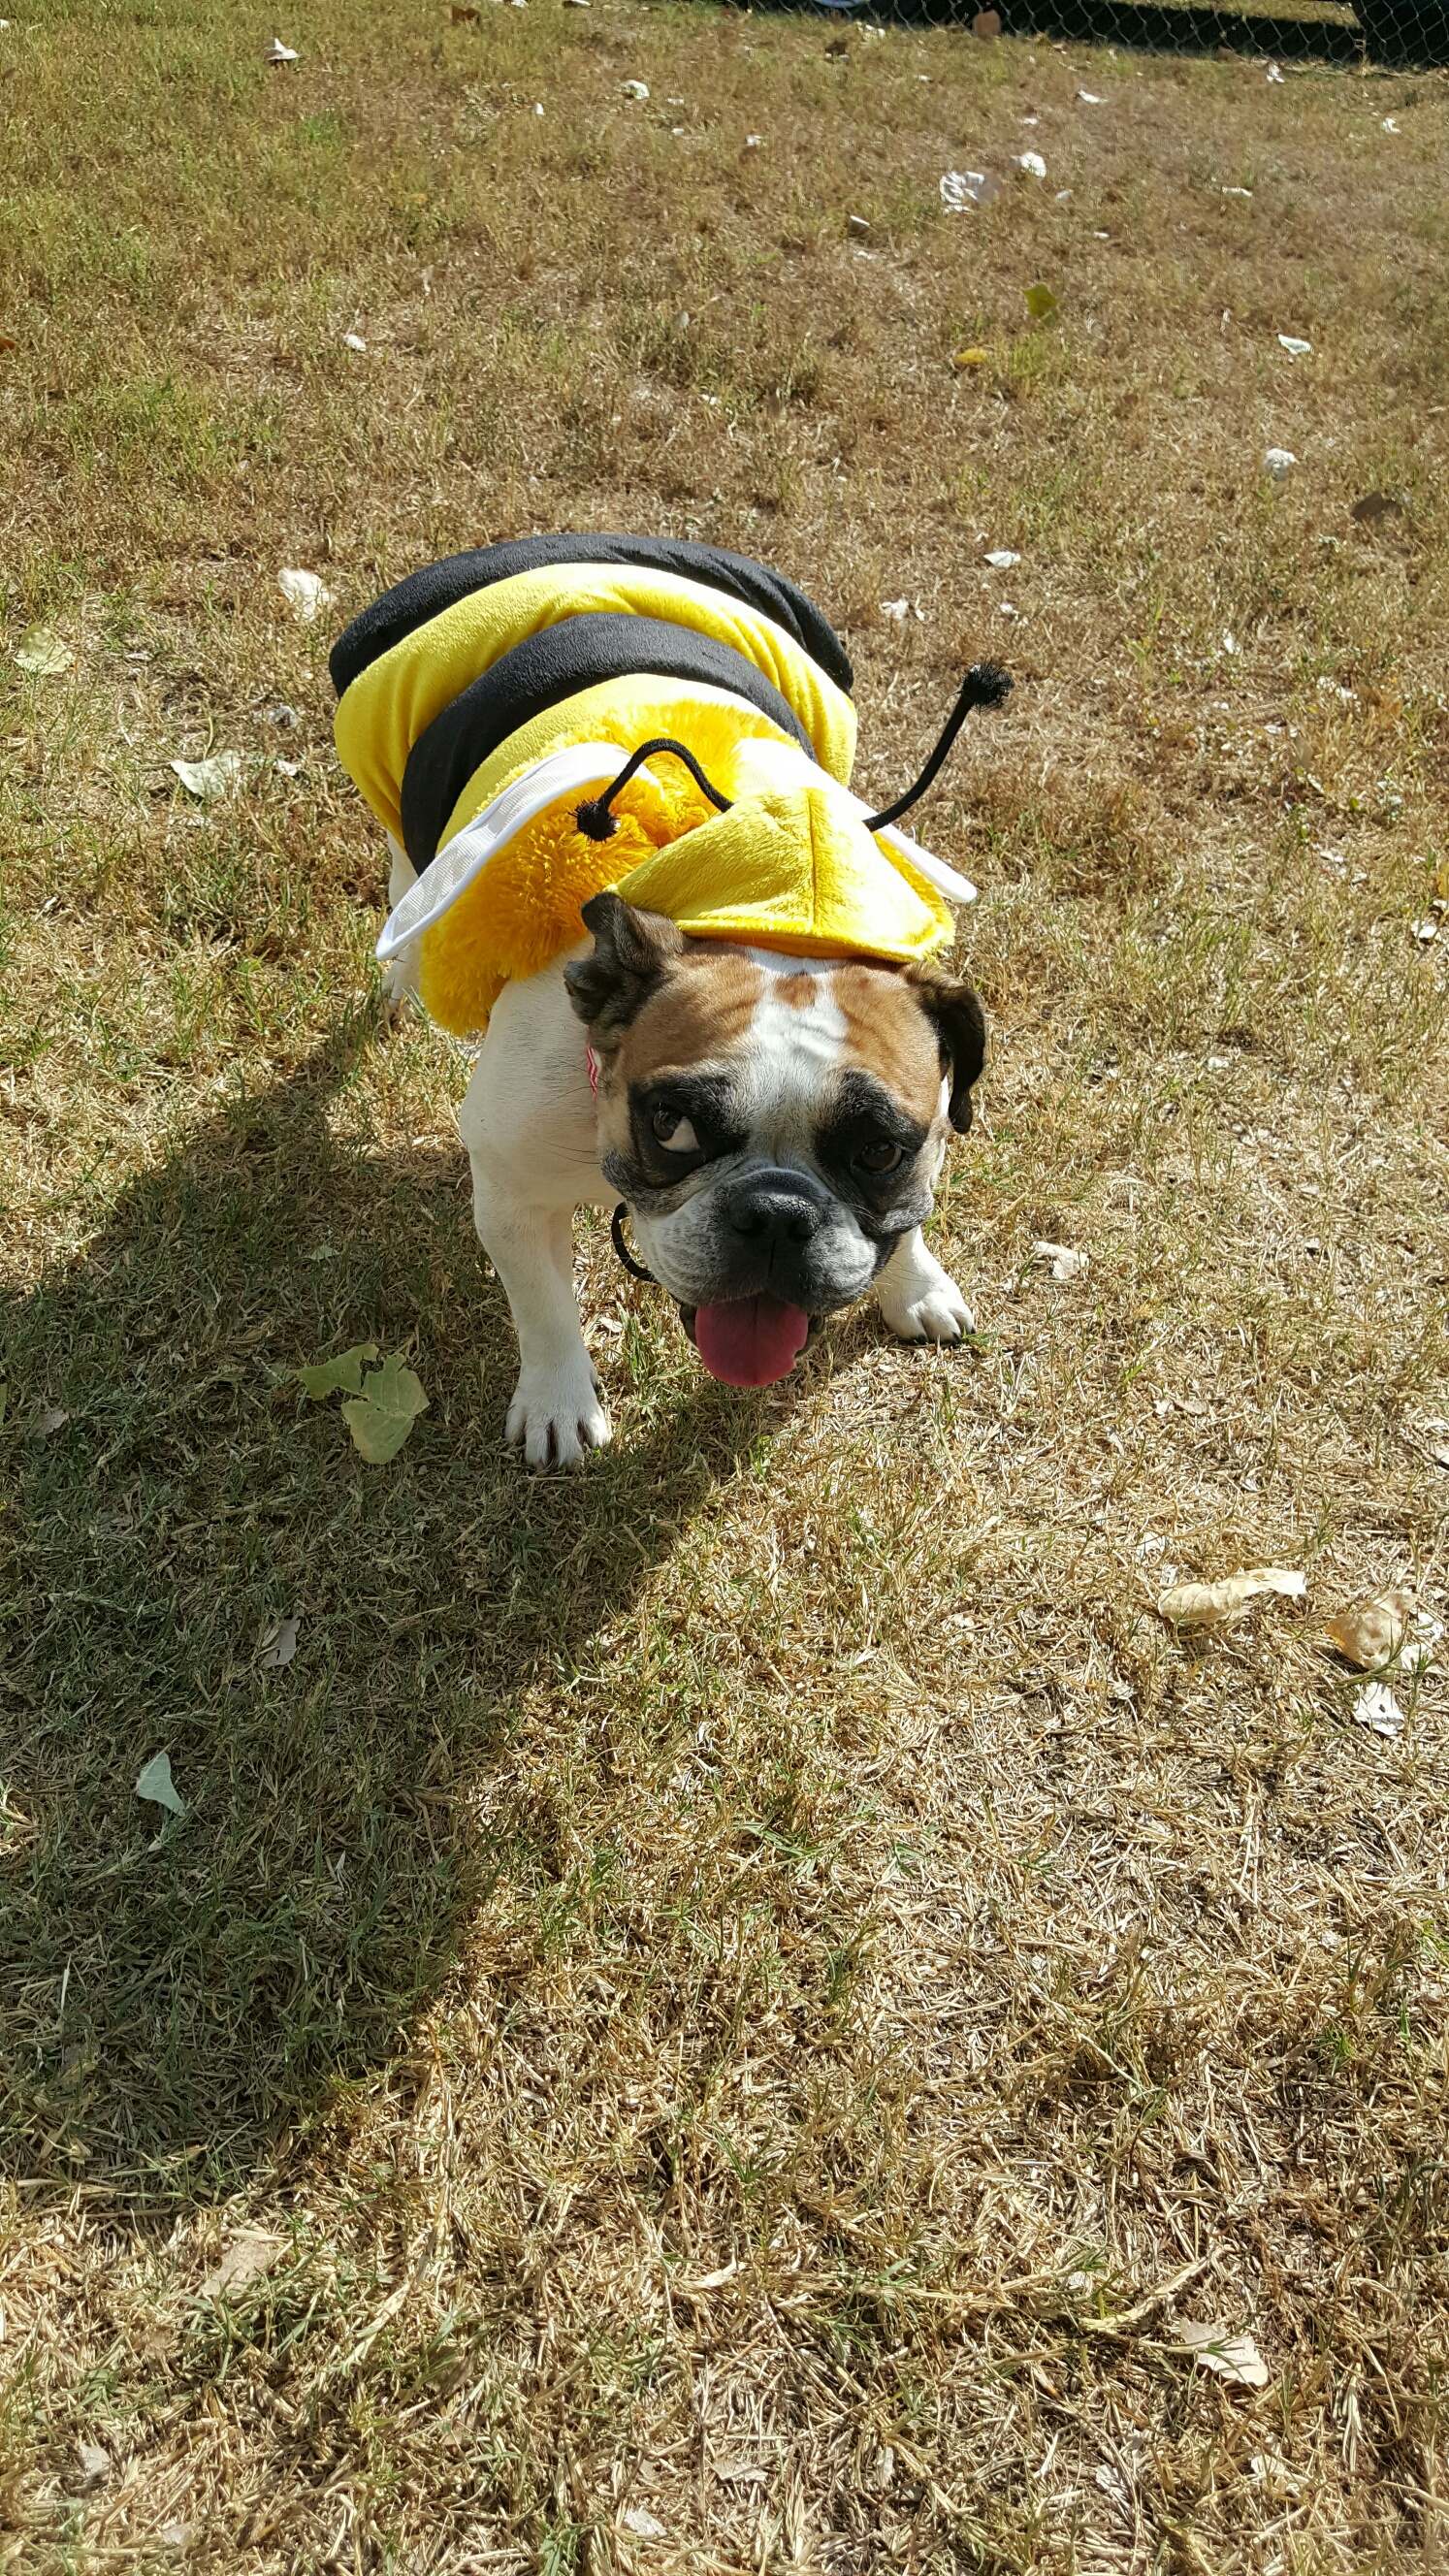 Zoie, the bulldog bumble bee.